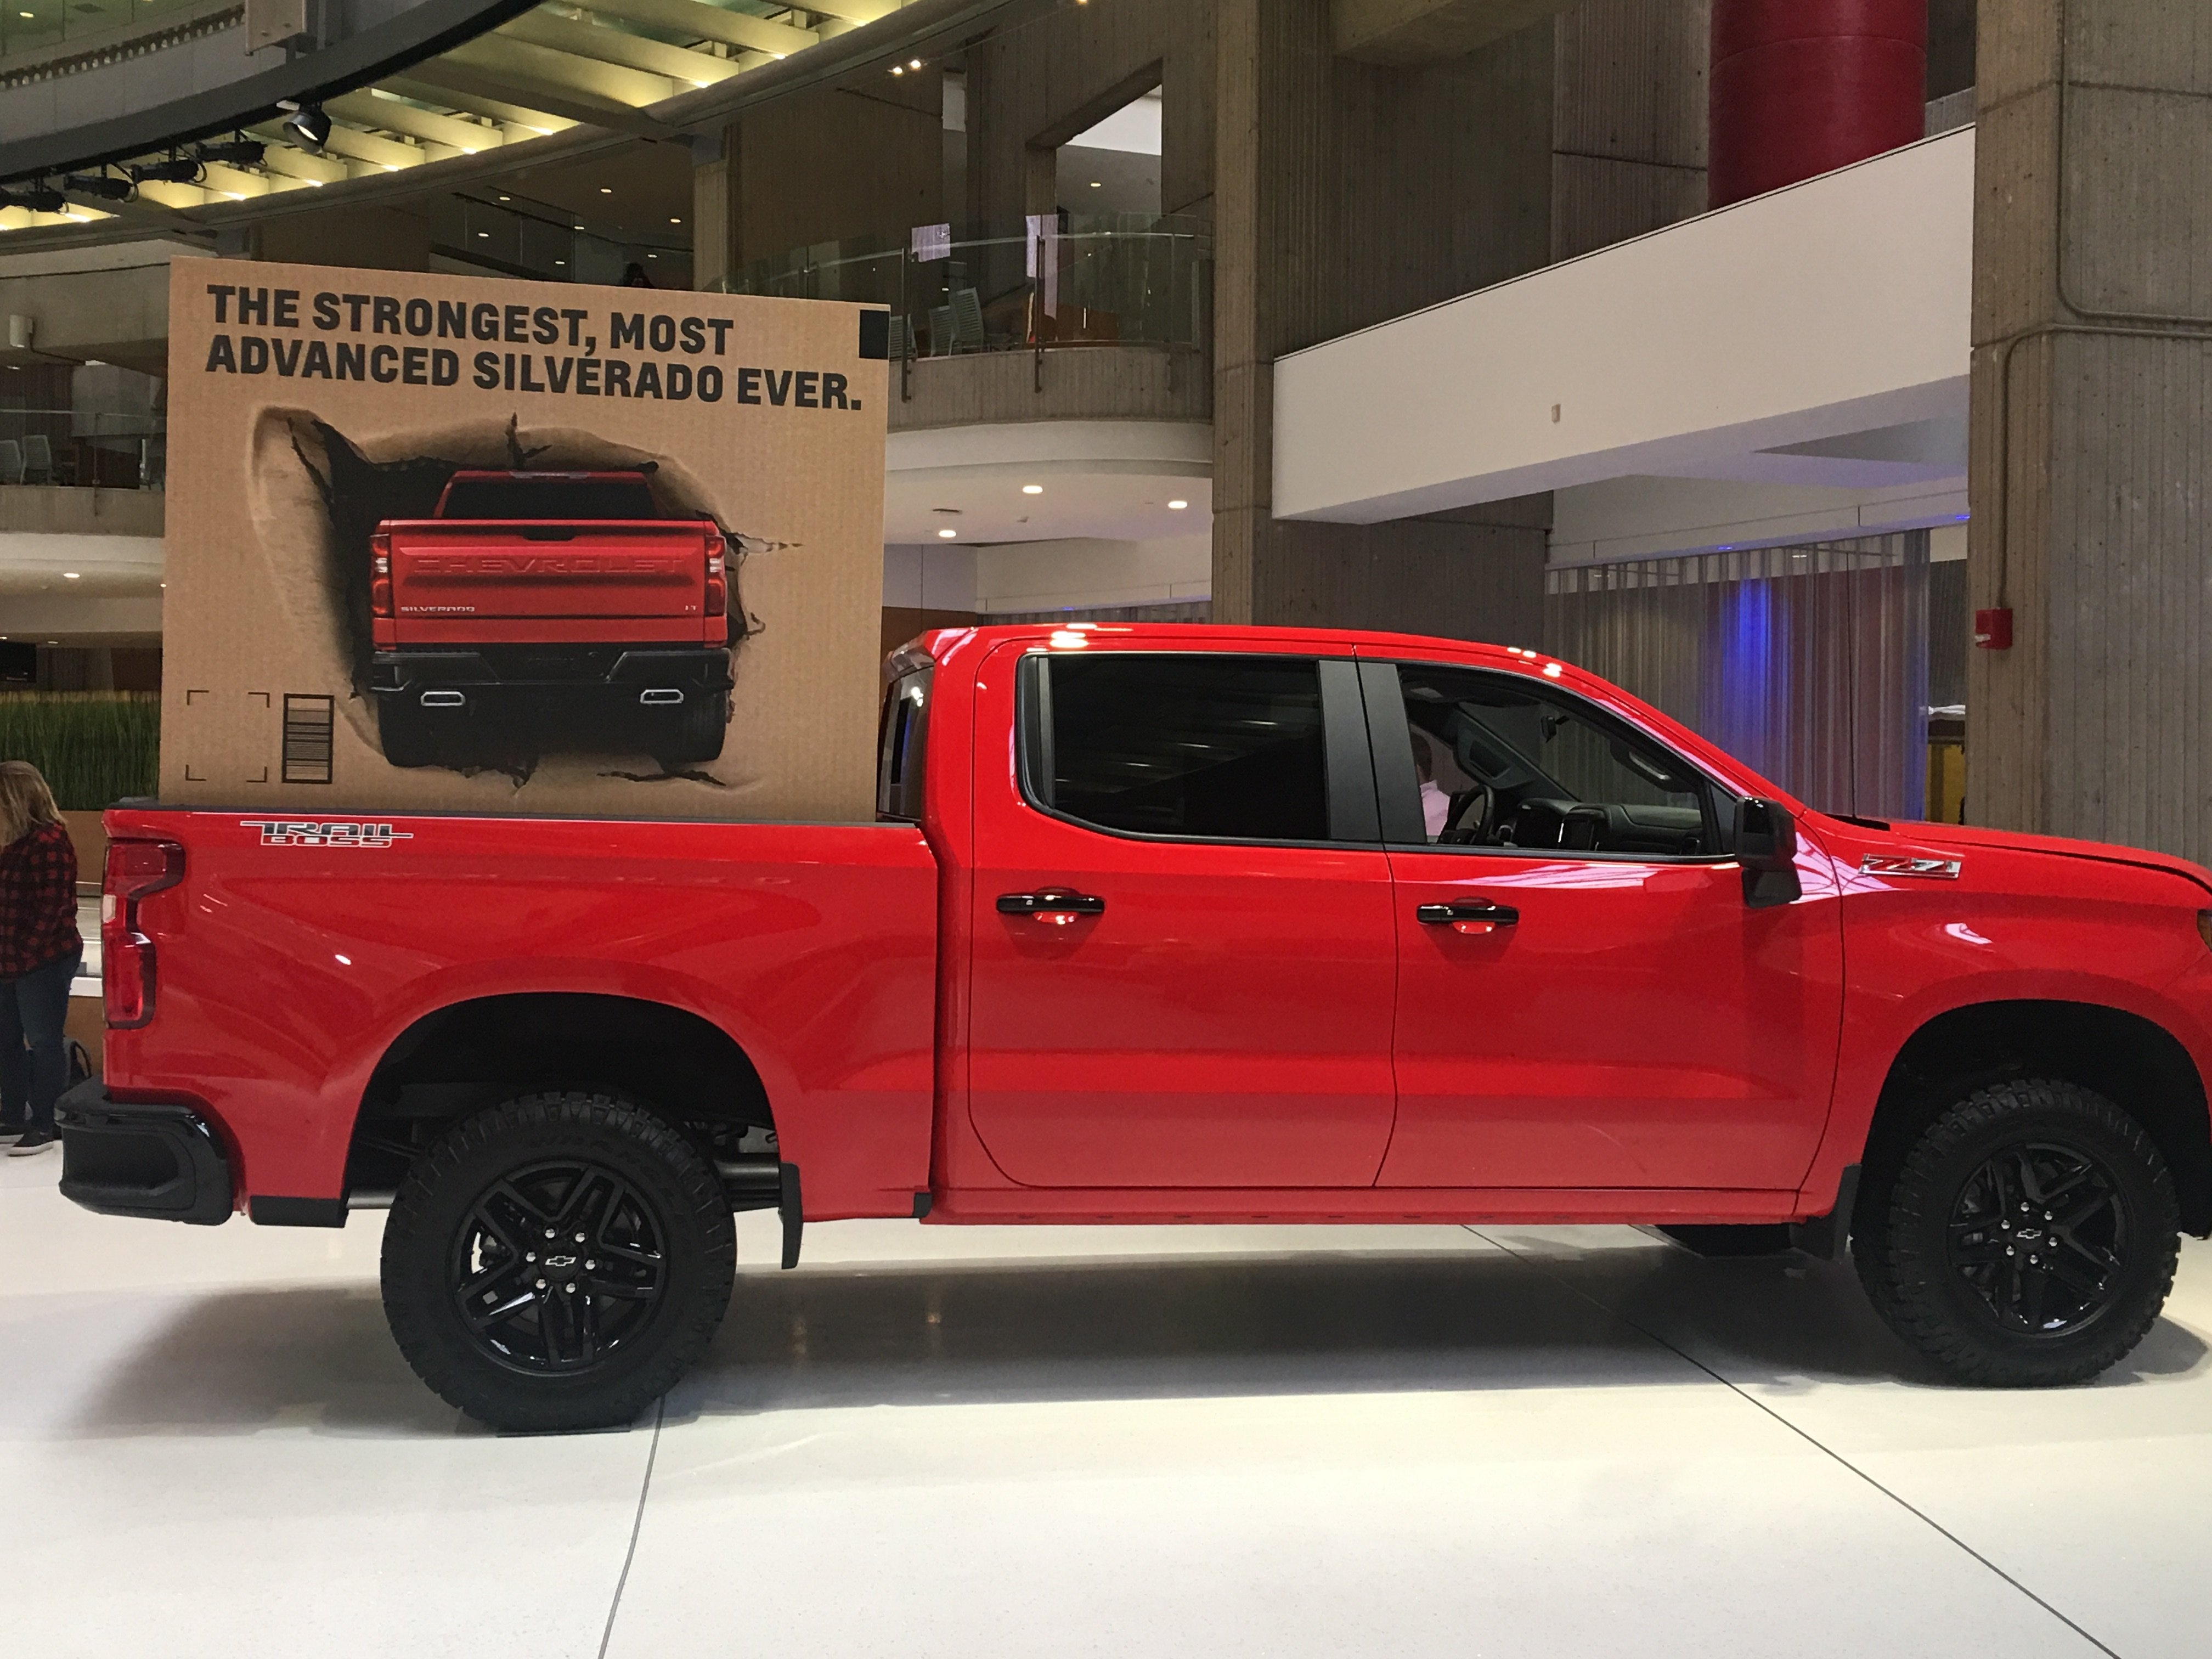 Where is GRG Today? Designing Silverado-Sized Display Boxes